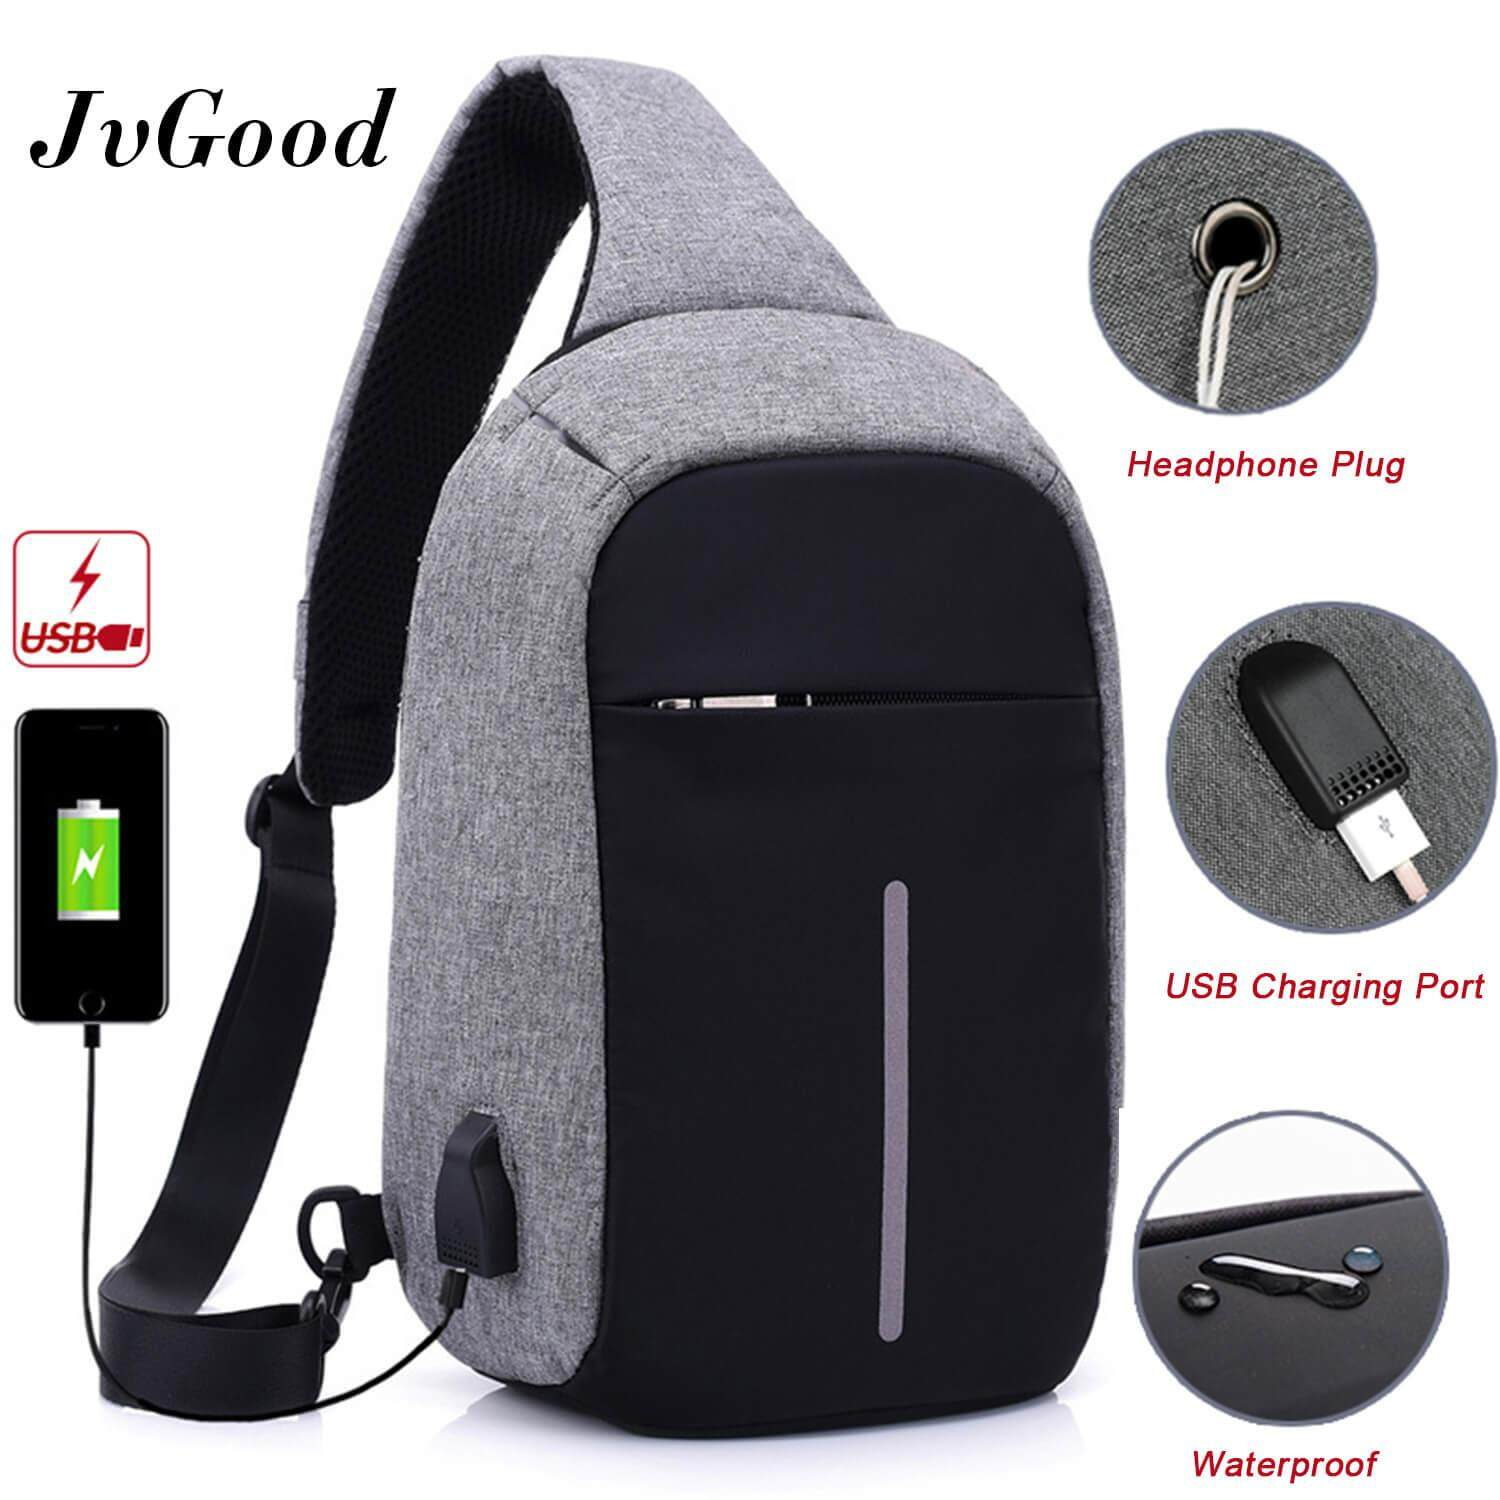 Men Bags 3 Buy At Best Price In Malaysia Lazada Ready Stock Waist Bag Fila Zipper On Jvgood Usb Charging Chest Crossbody Anti Theft Sling Lightweight Casual Daypack For